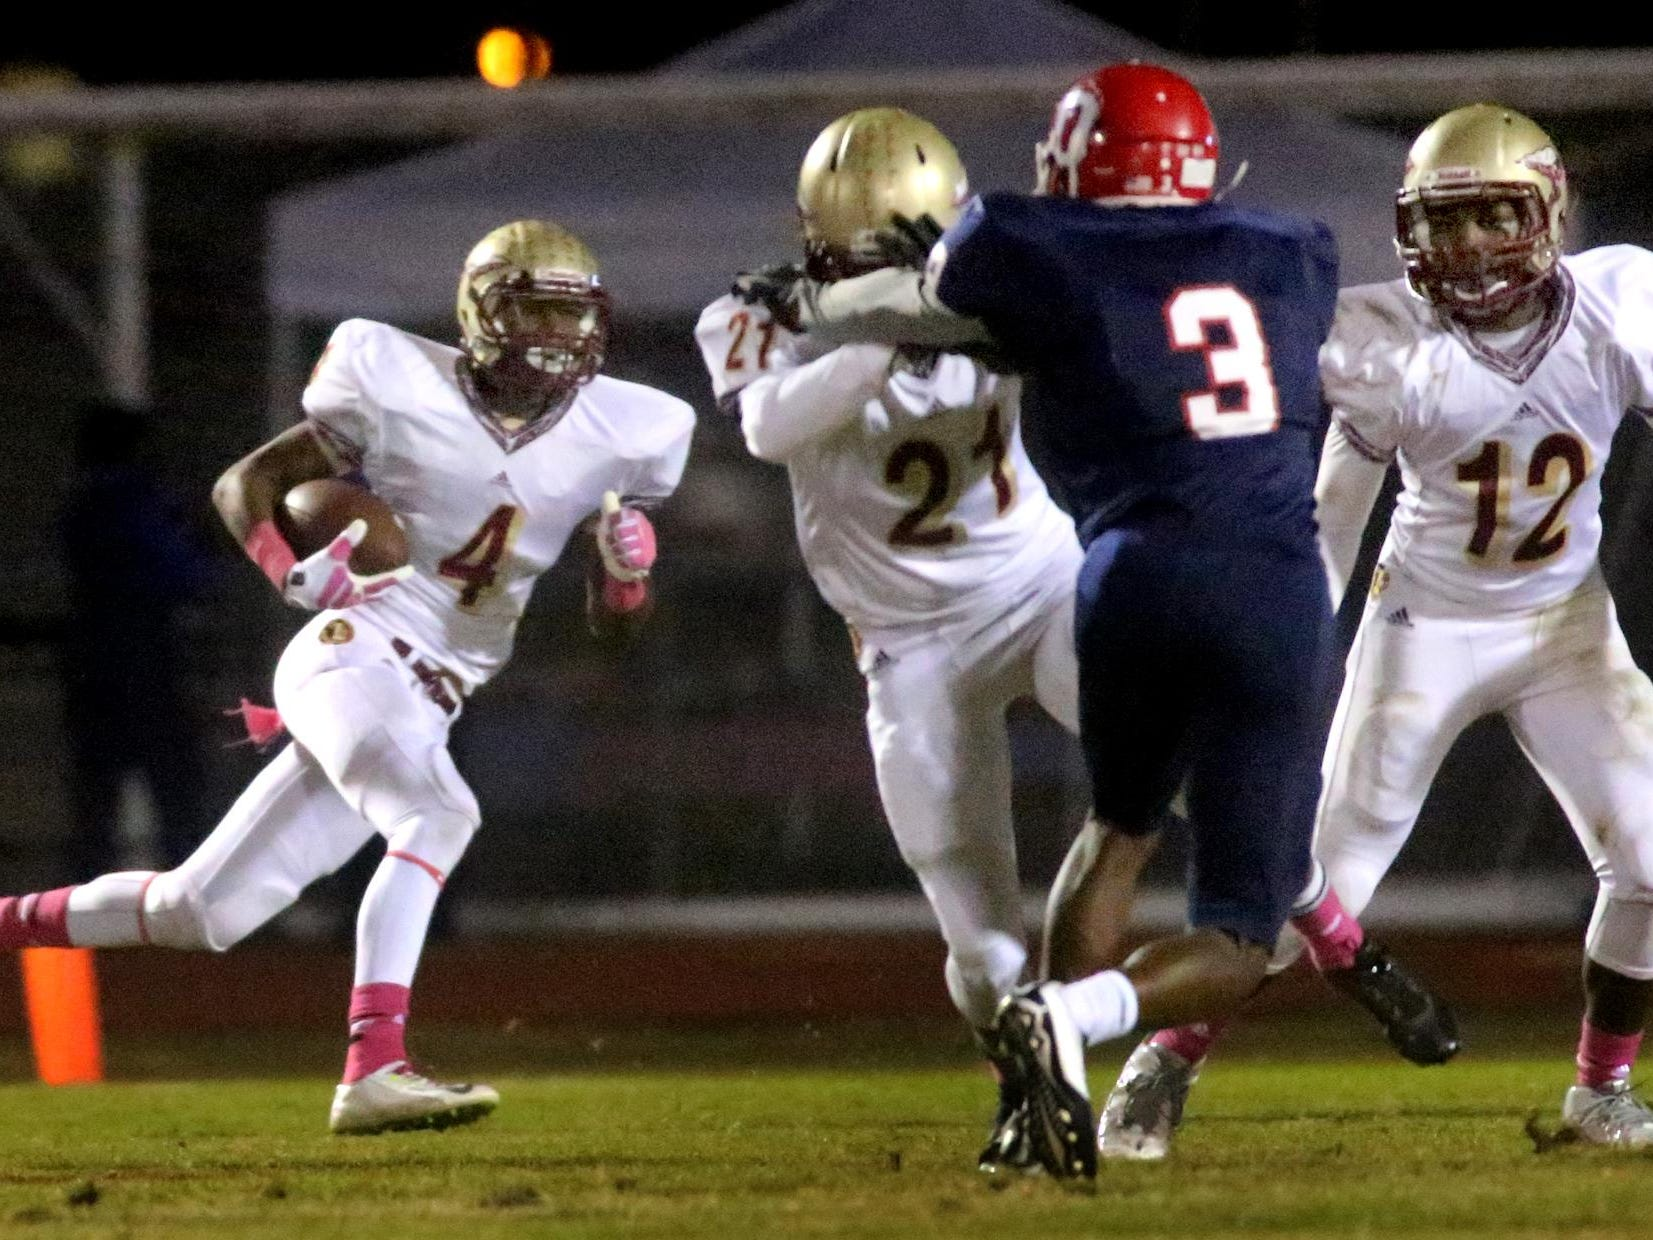 Riverdale's Marquise Cantrell is the leading receiver returning from last year in Rutherford County.